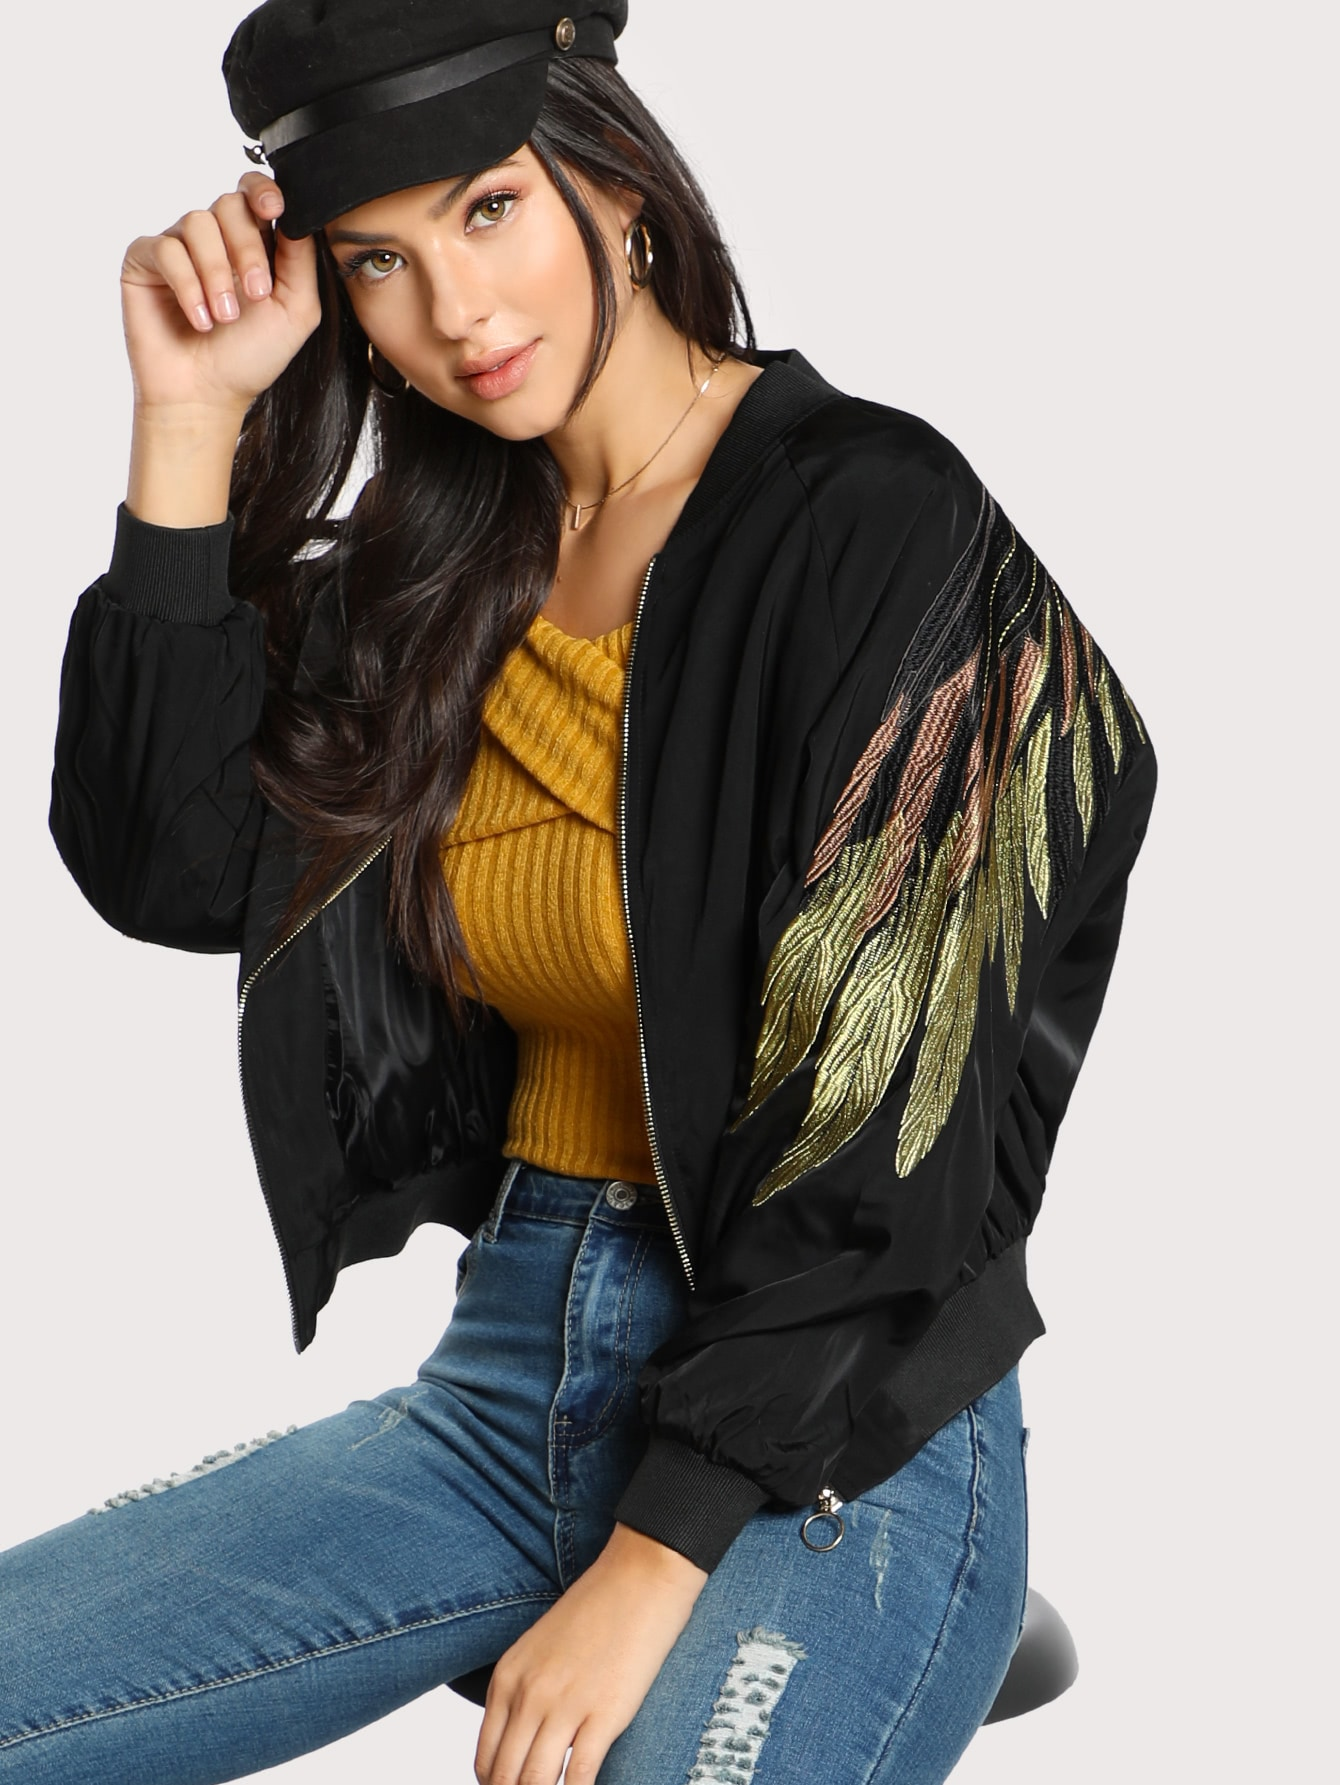 Feather Embroidered Zip Up Bomber Jacket я николай гумилев